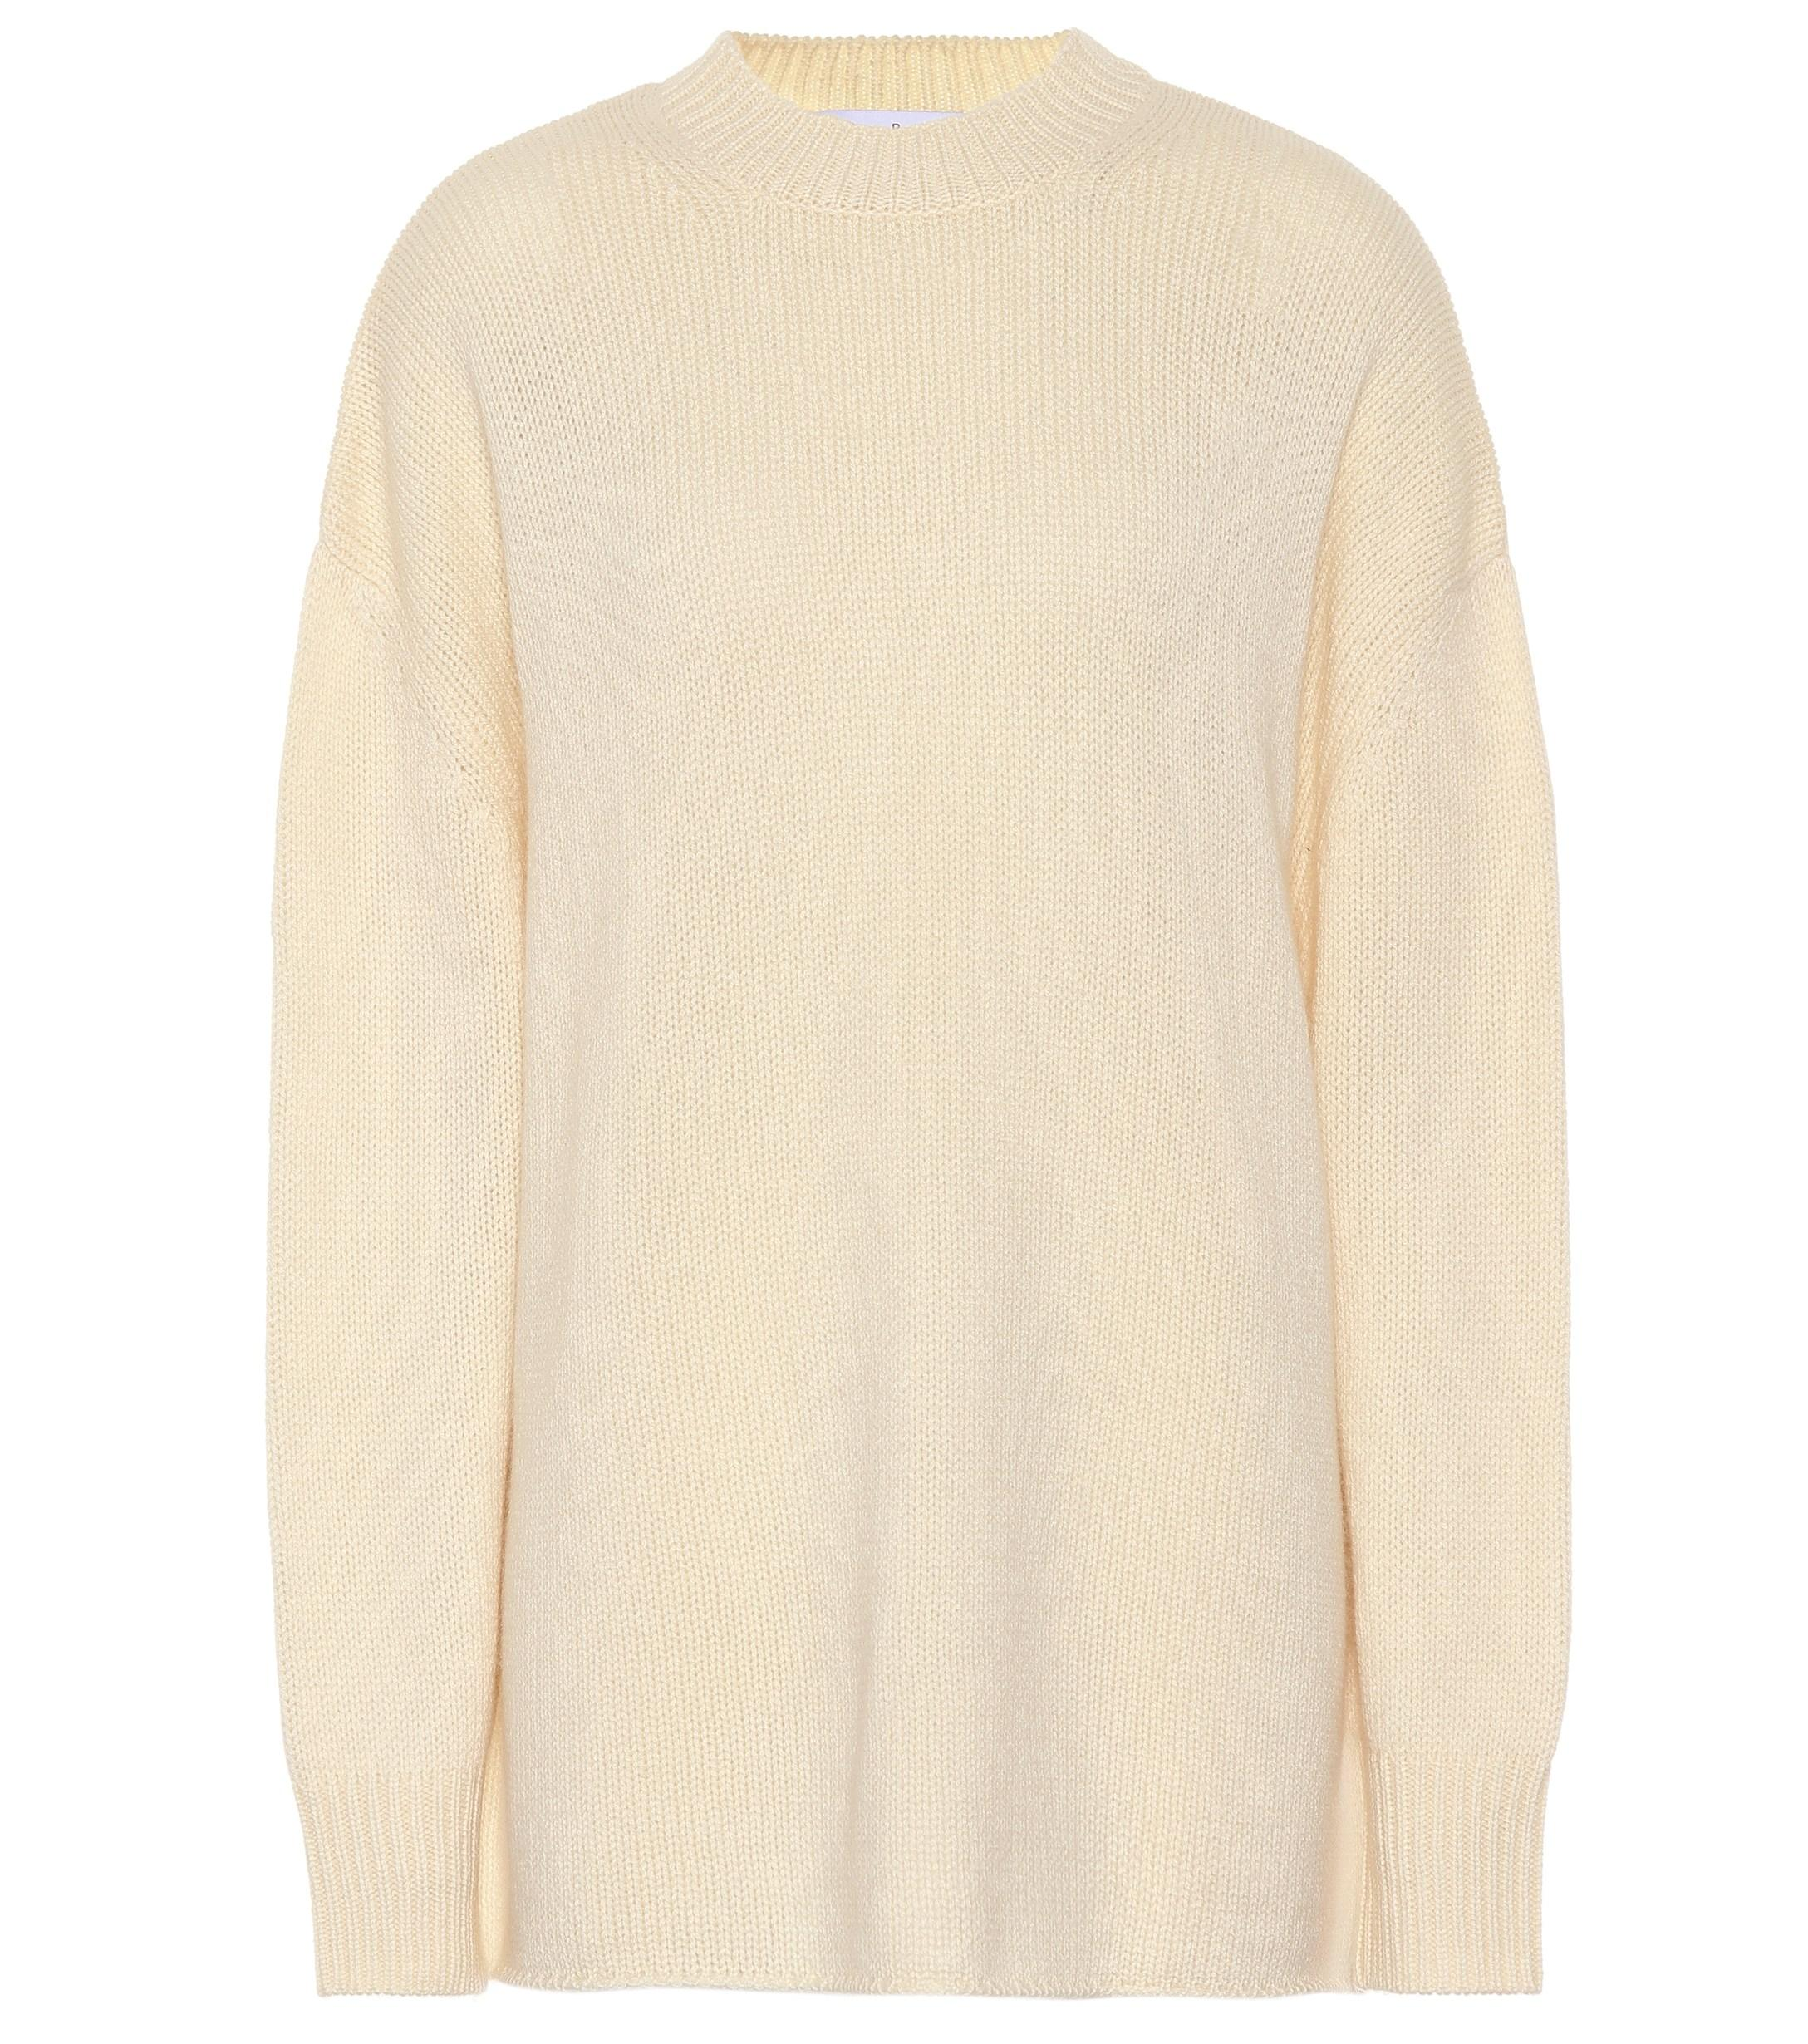 Lyst - Ryan Roche Cashmere Sweater in White f44a961d3